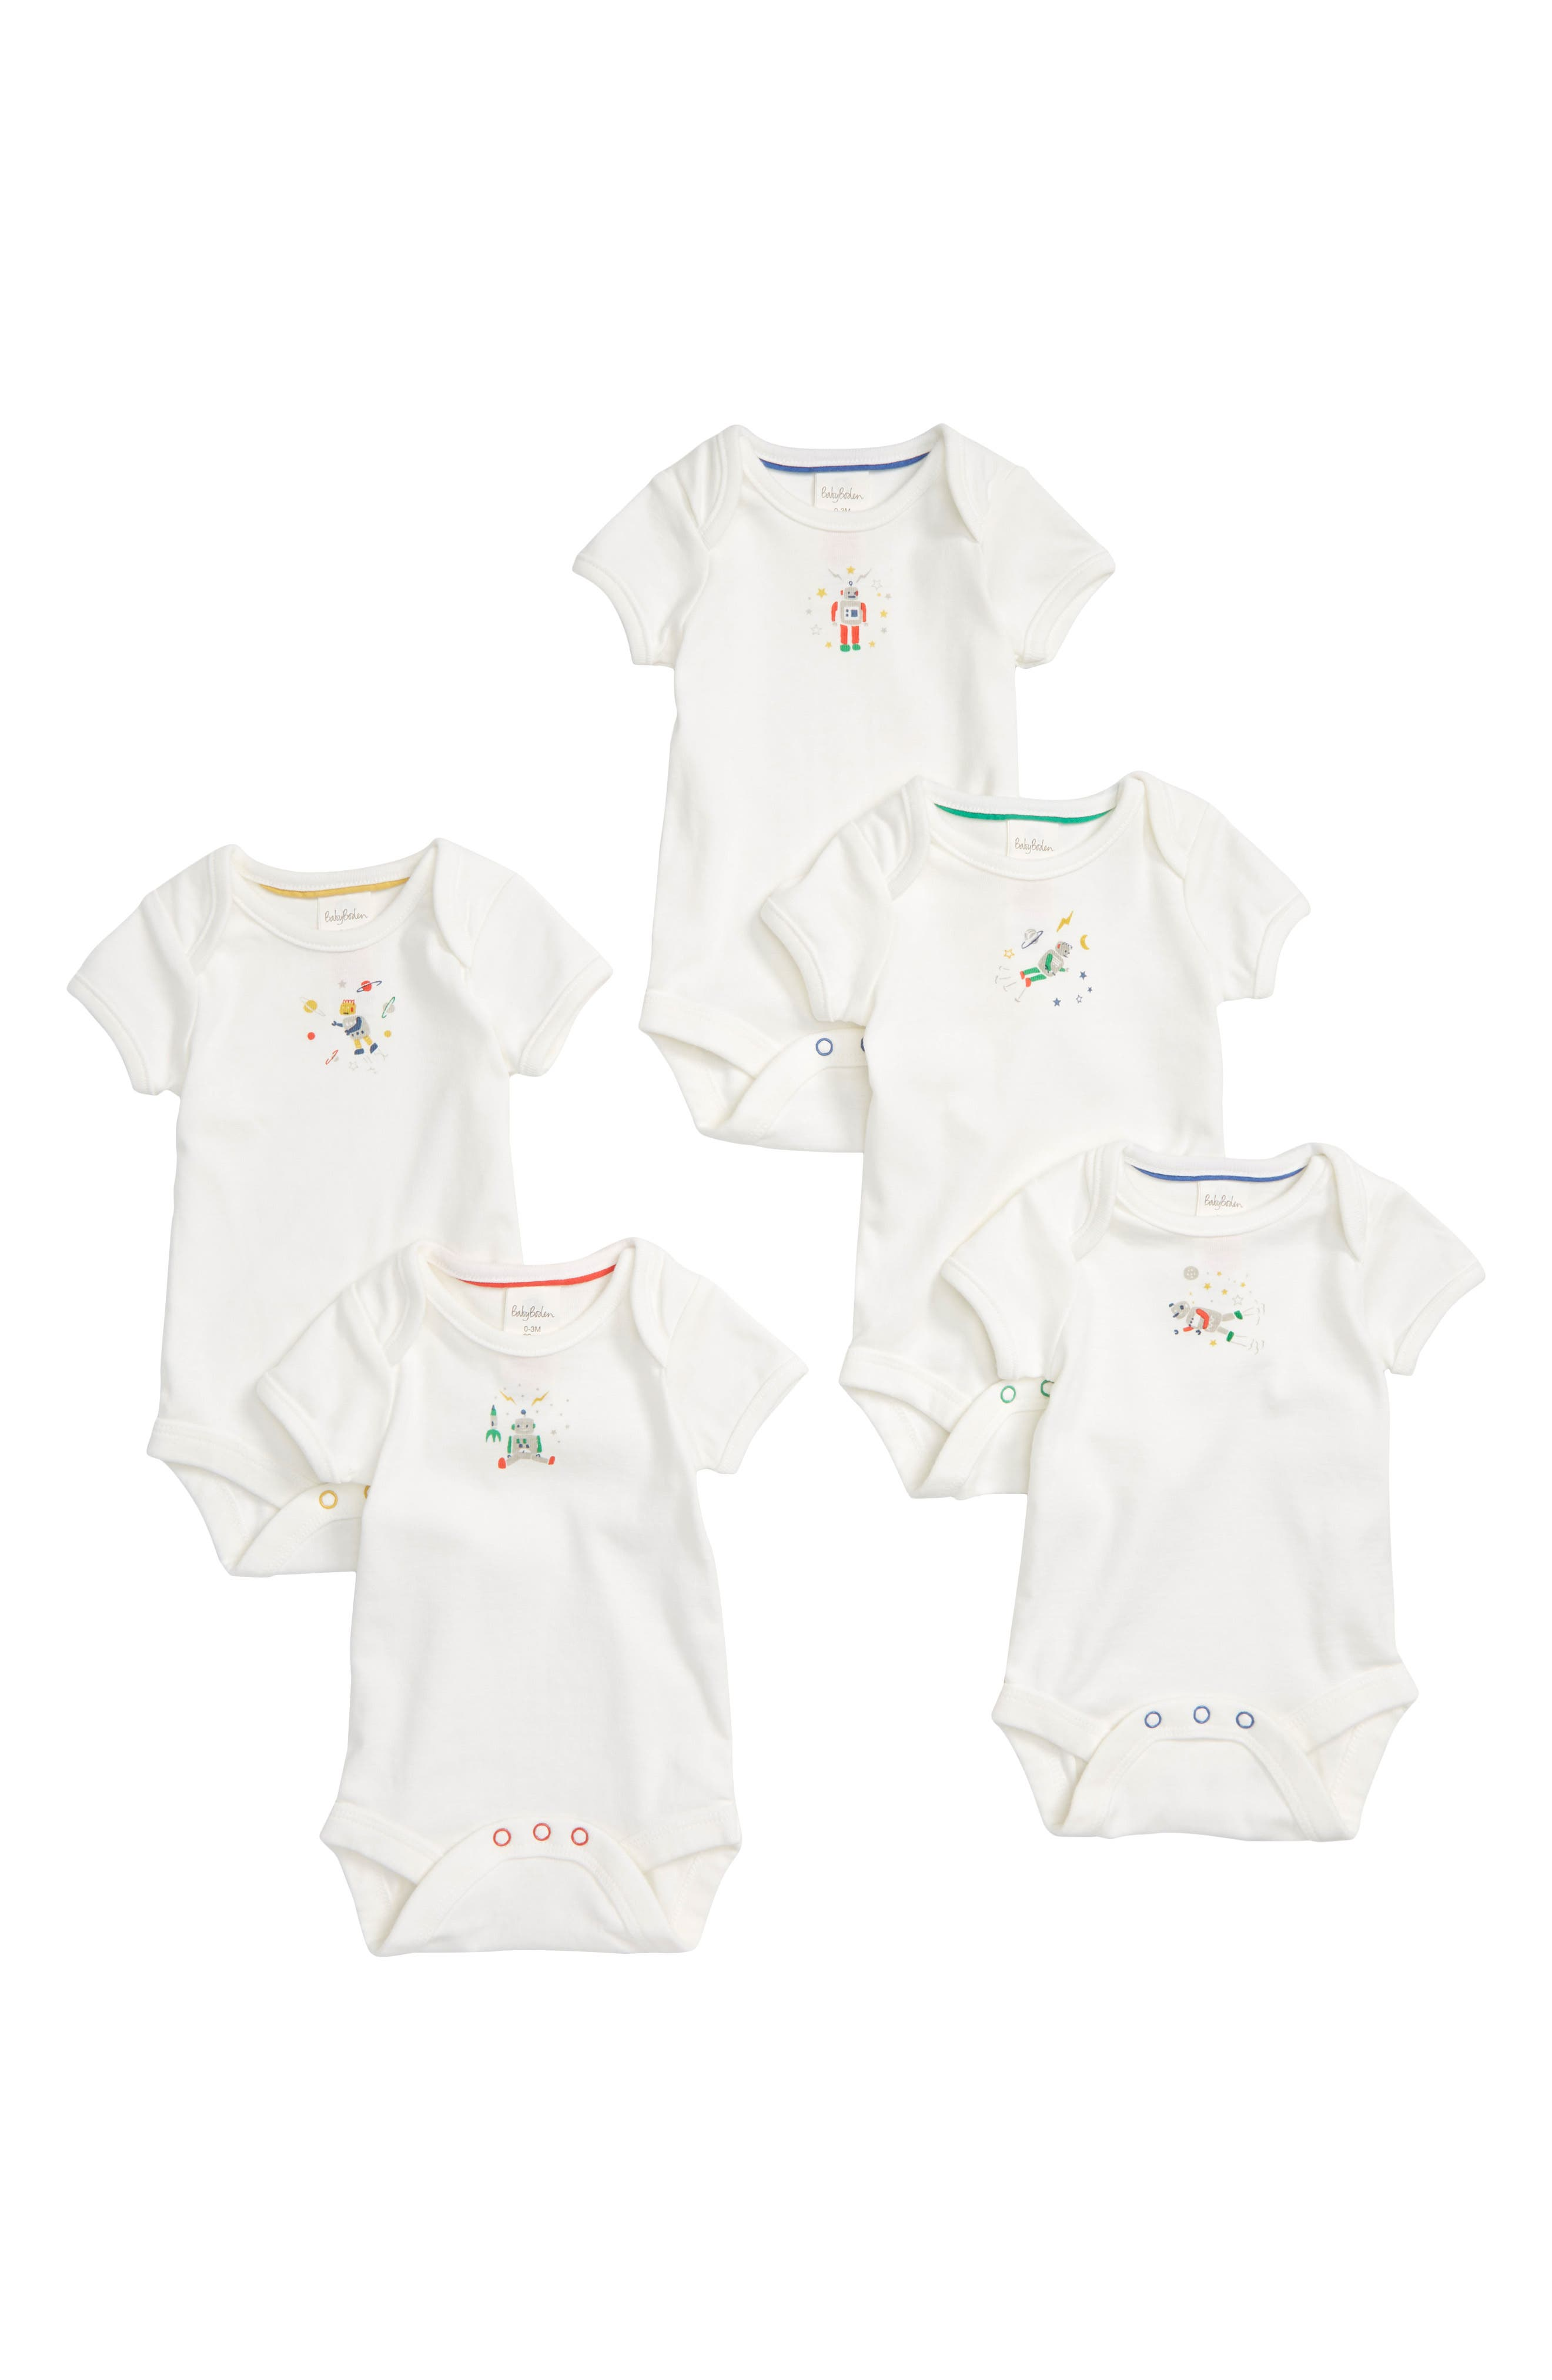 MINI BODEN Robot 5-Pack Organic Cotton Bodysuits, Main, color, 186